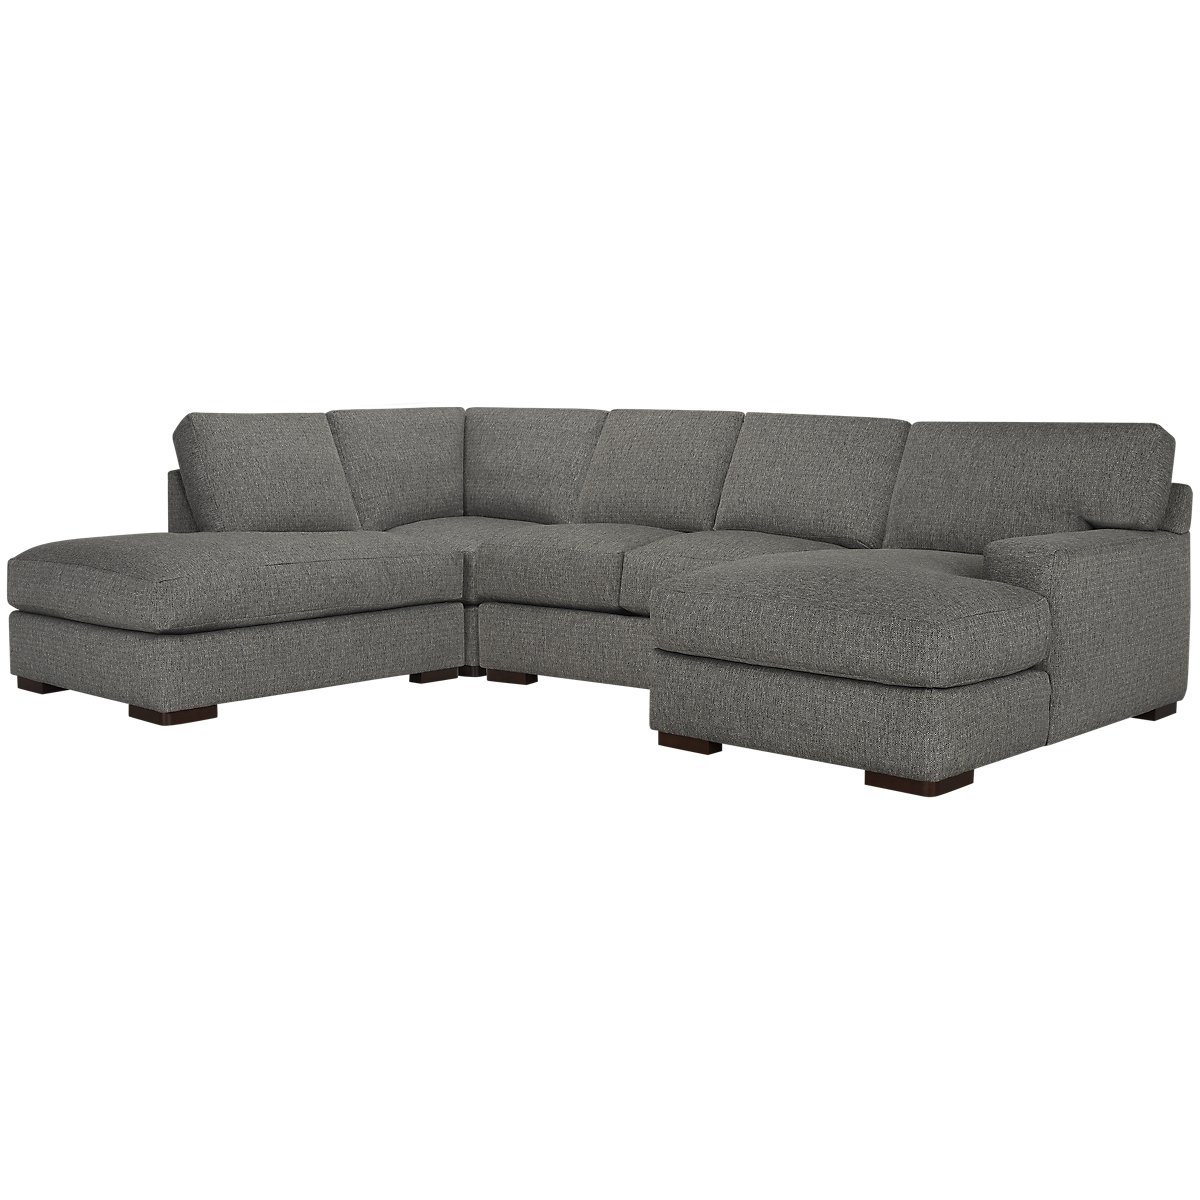 Veronica Gray Fabric Small Left Bumper Sectional